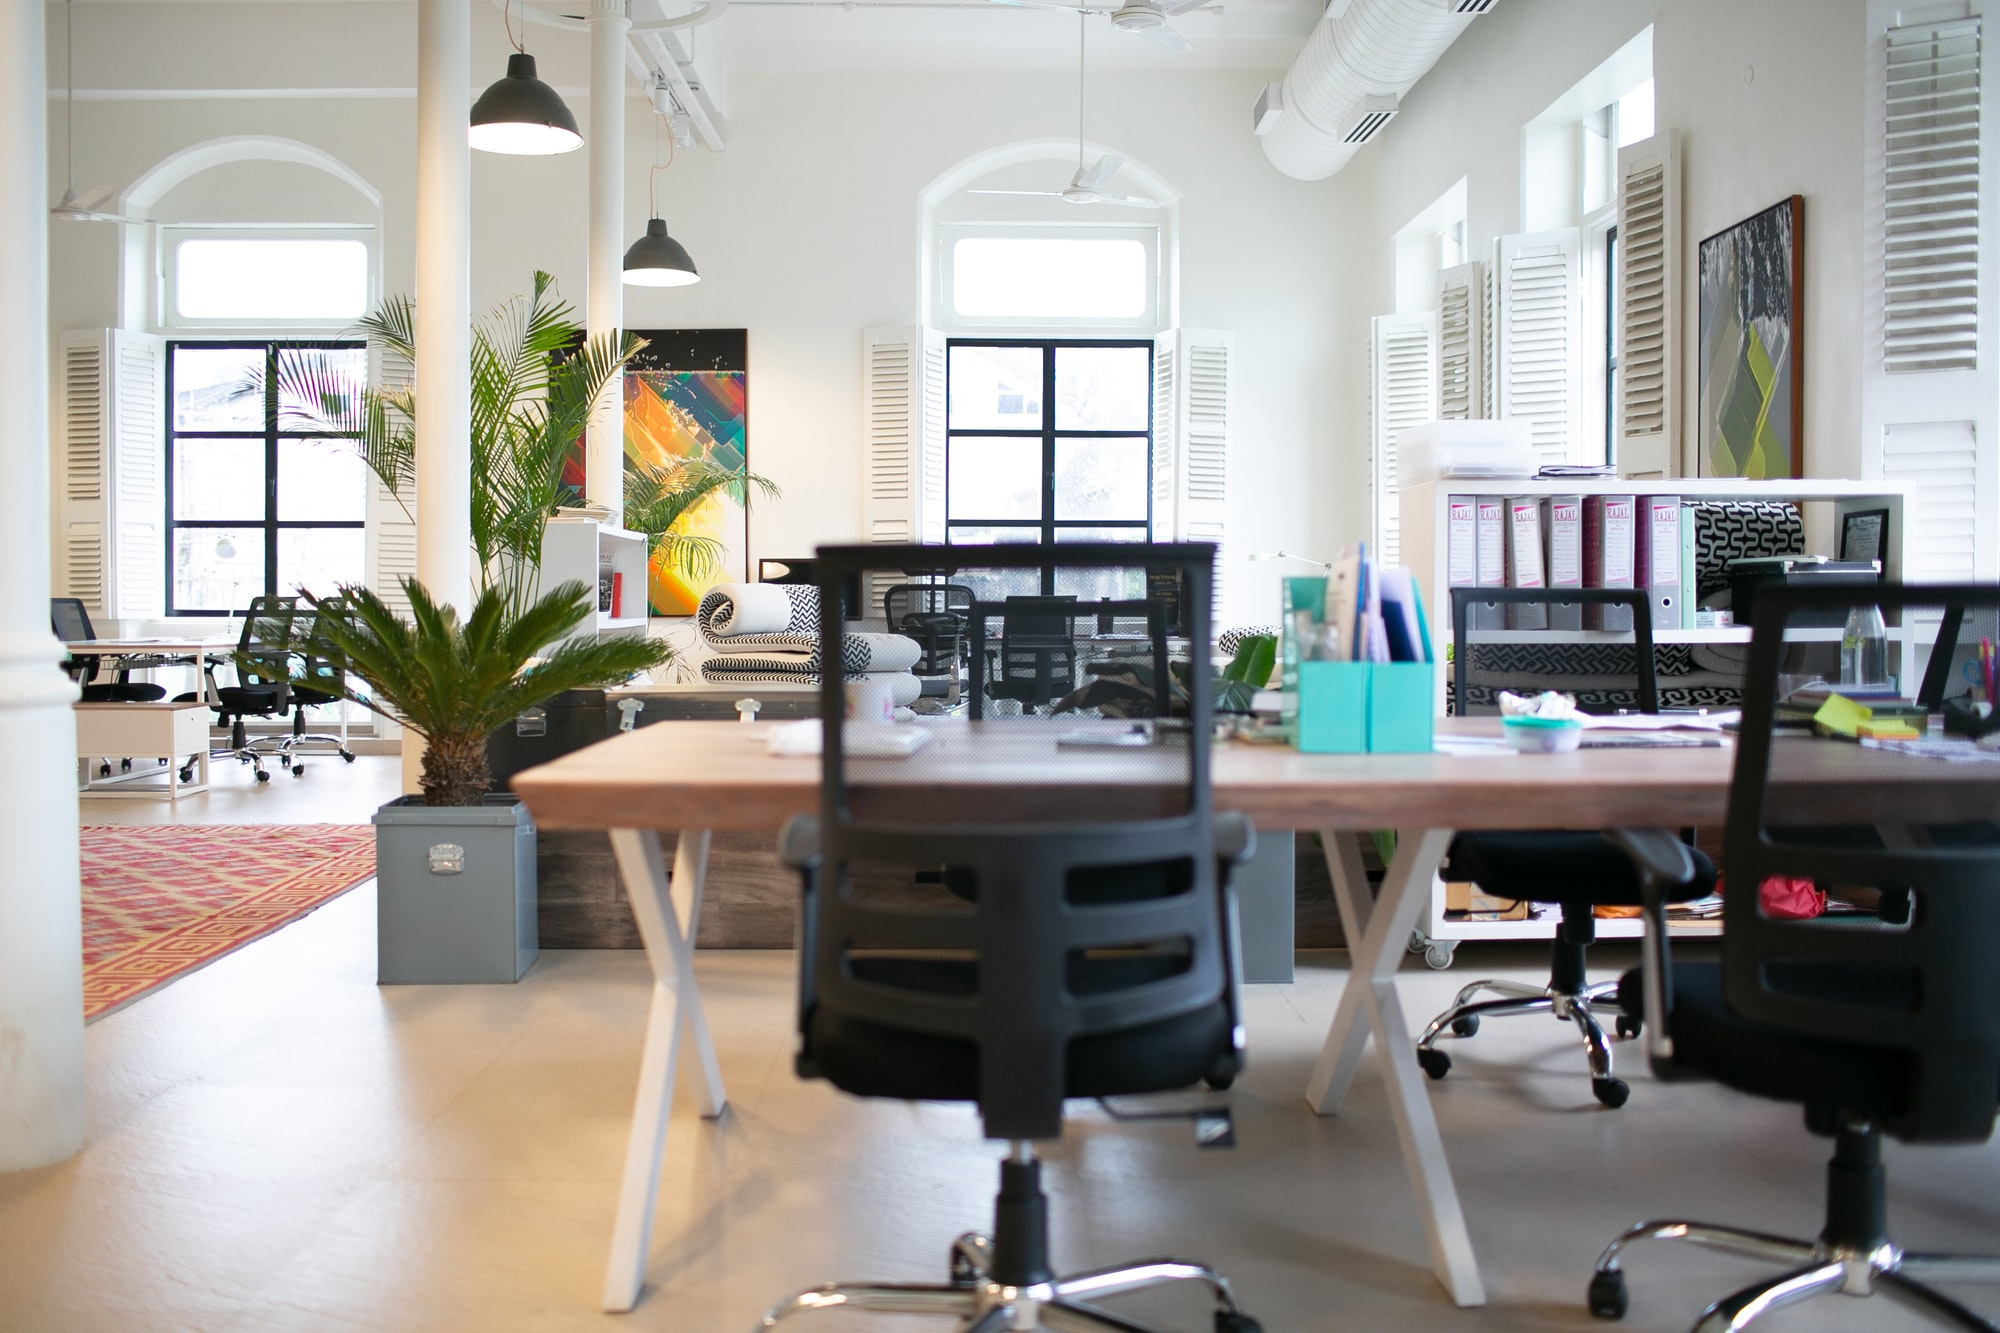 Calm office environment in India